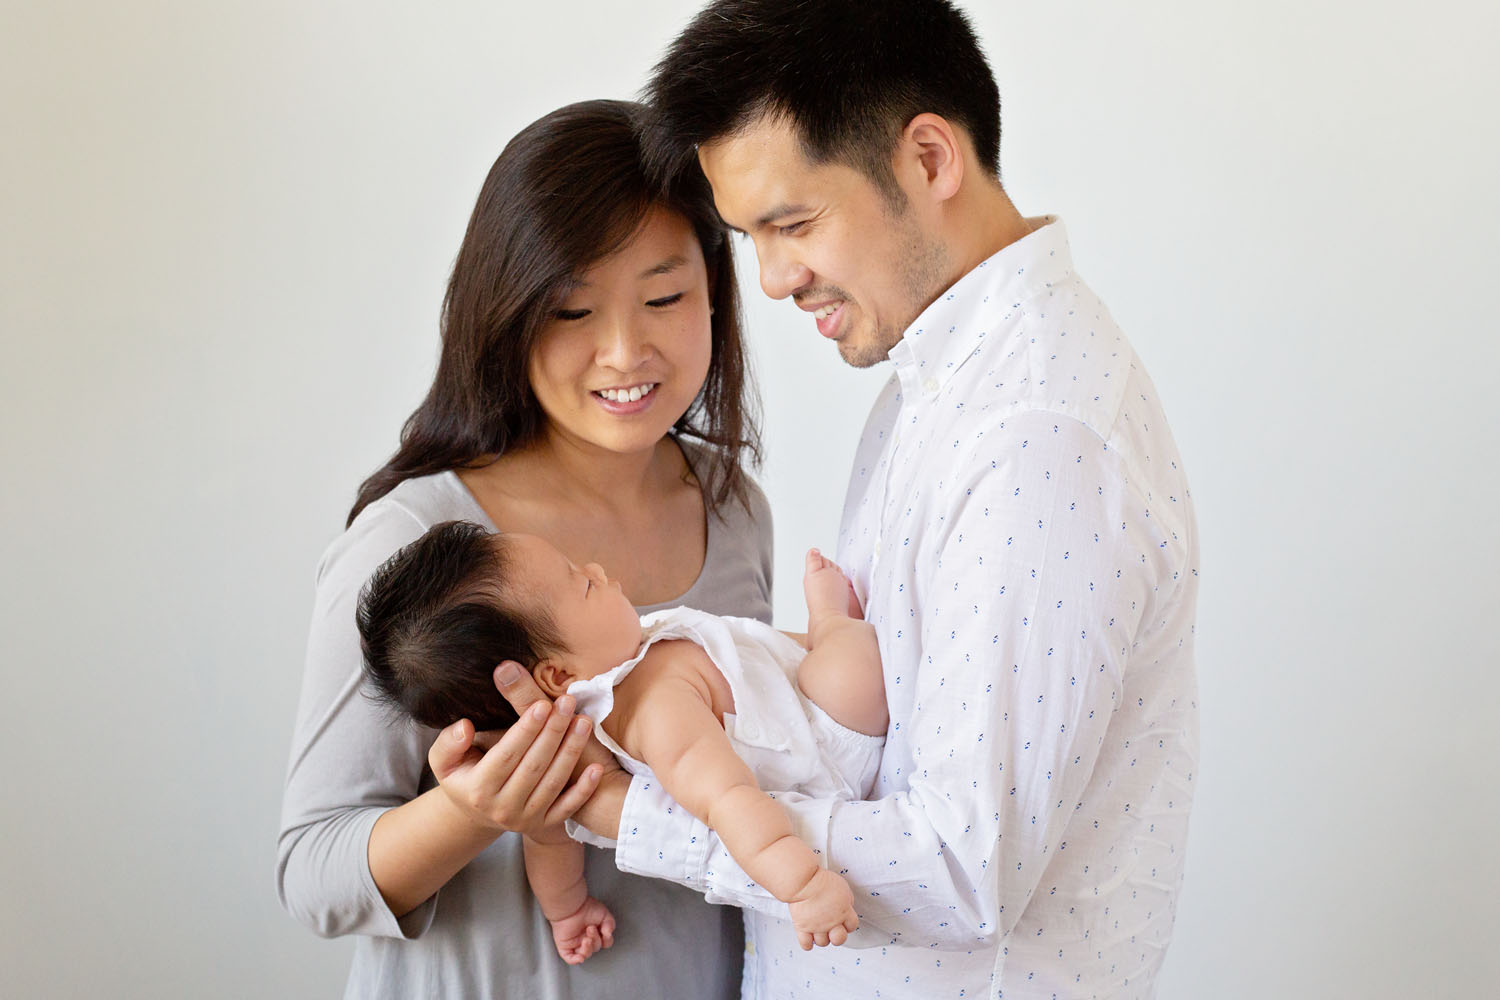 professional photos of a beautiful couple smiling at their newborn baby girl in kearny new jersey